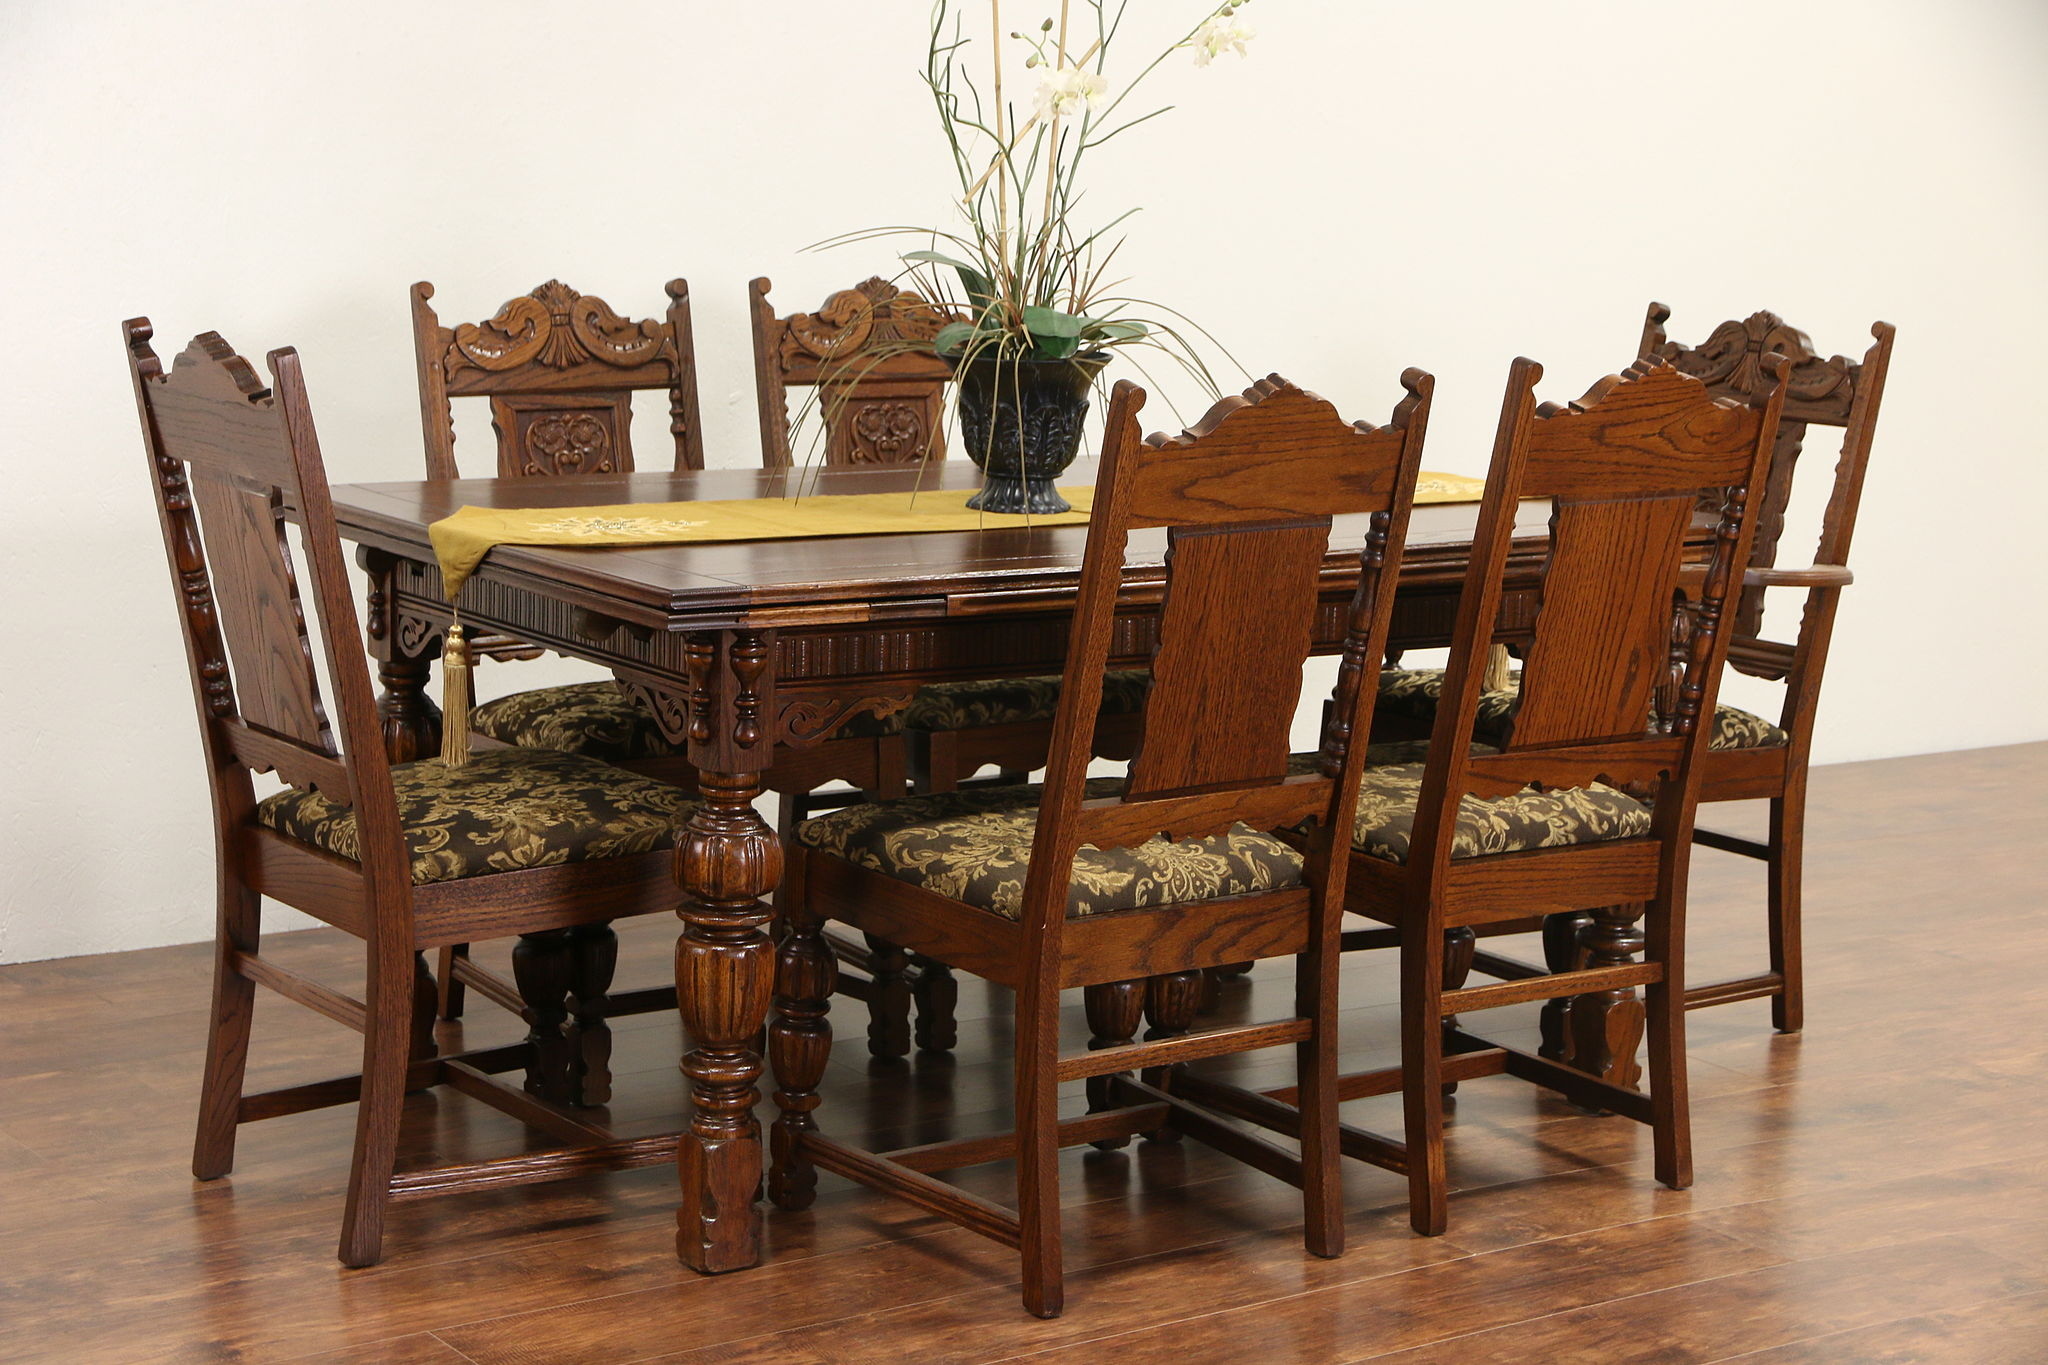 Sold English Tudor 1920 Antique Carved Oak Dining Set